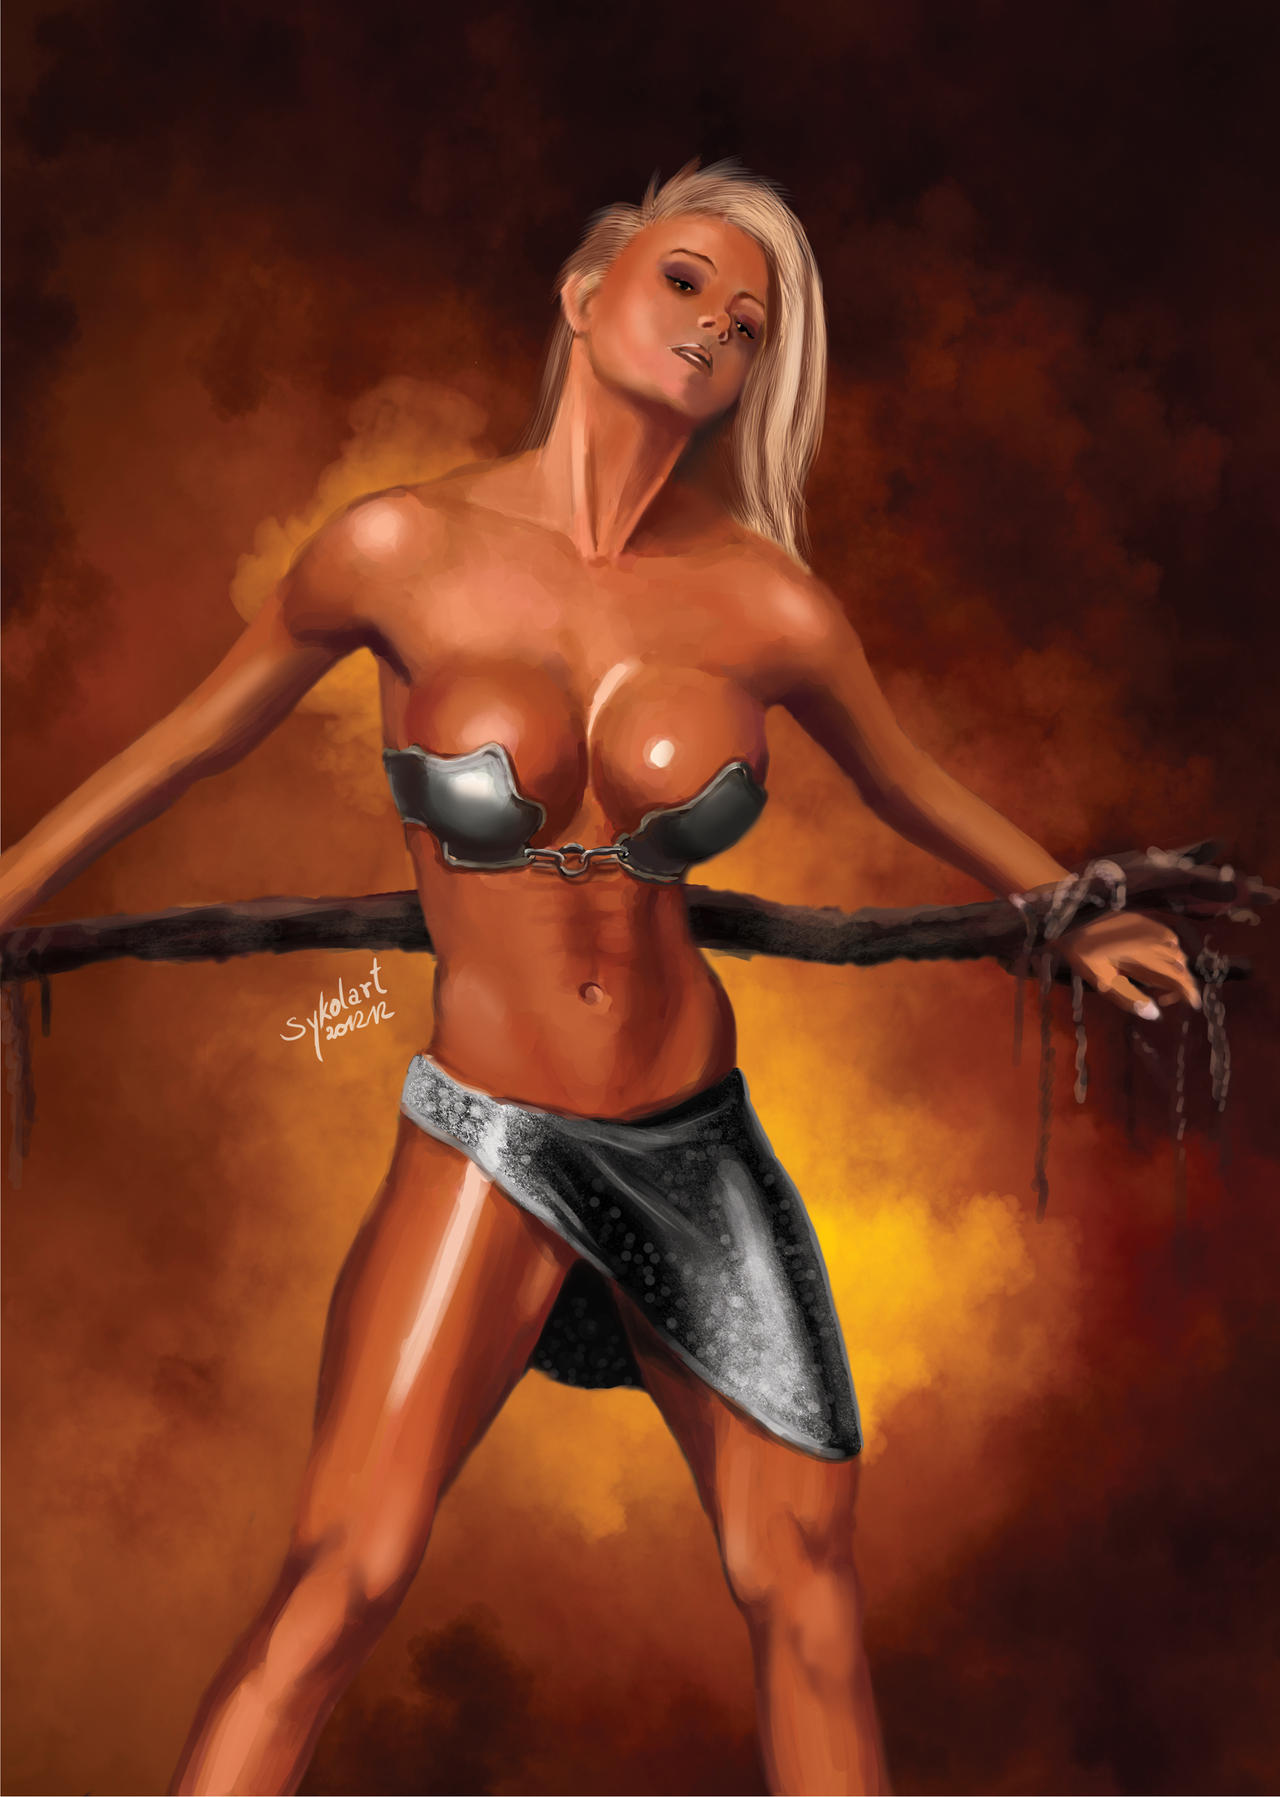 Fantasy warrior slave girl porn adult comic